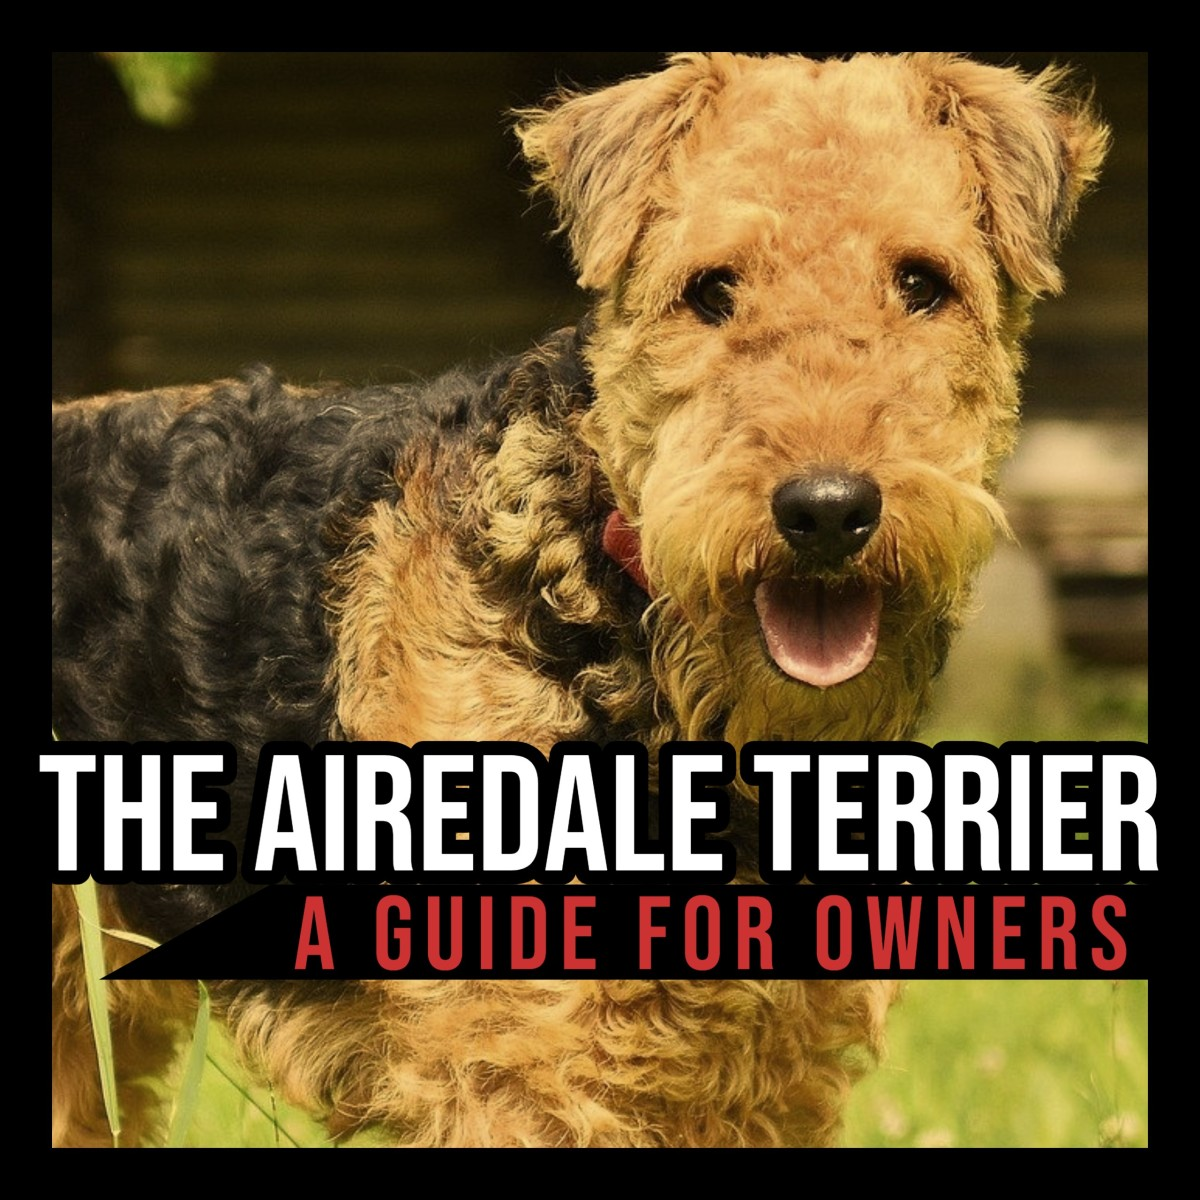 The Airedale Terrier: A Guide for Owners.